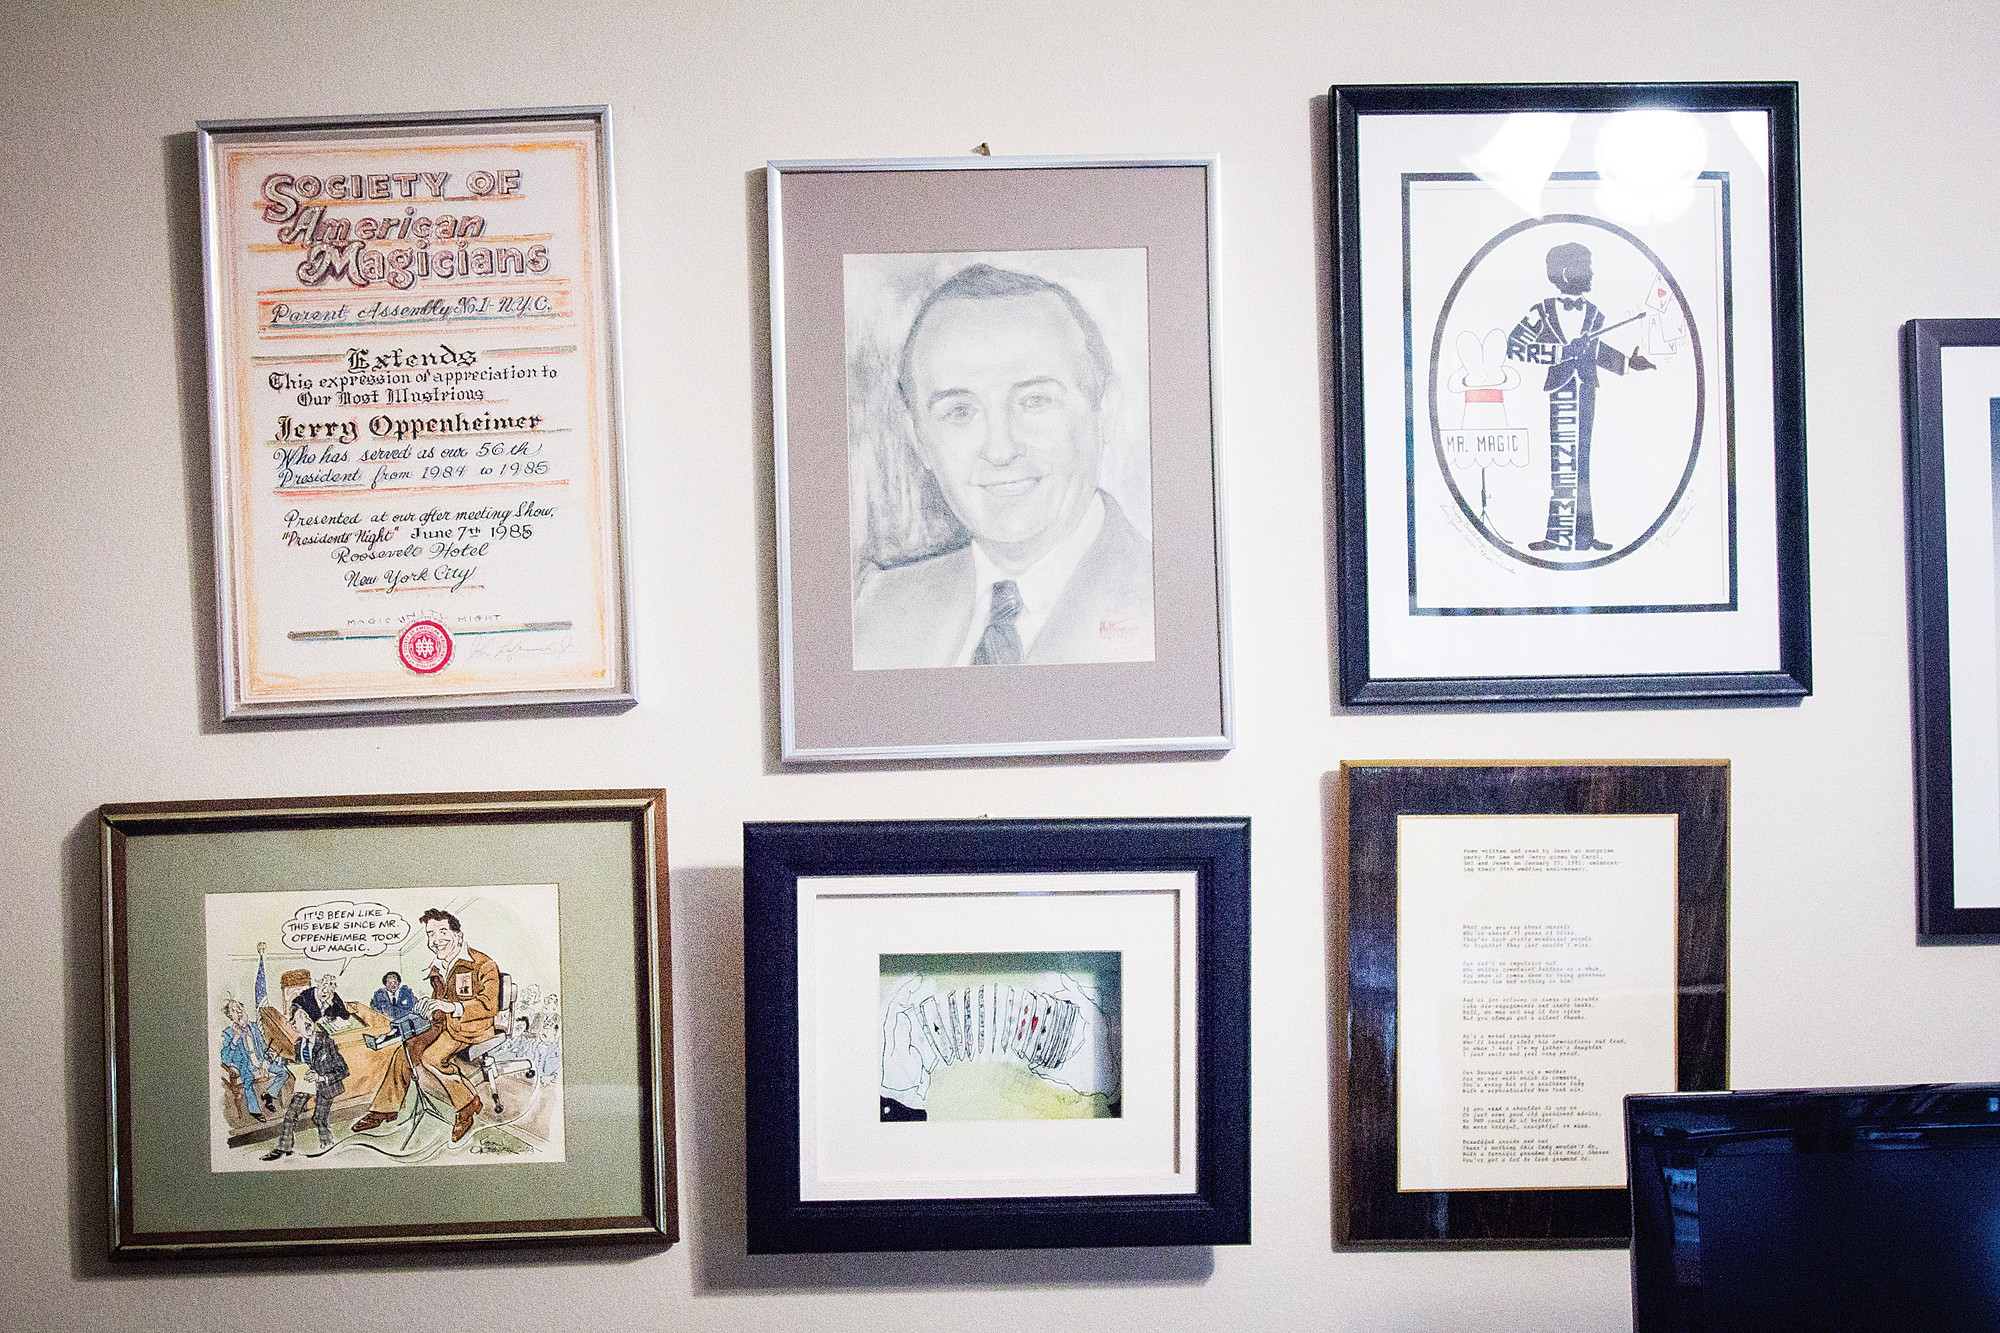 Pictures and text in the home of Jerry Oppenheimer, 93, on June 19.